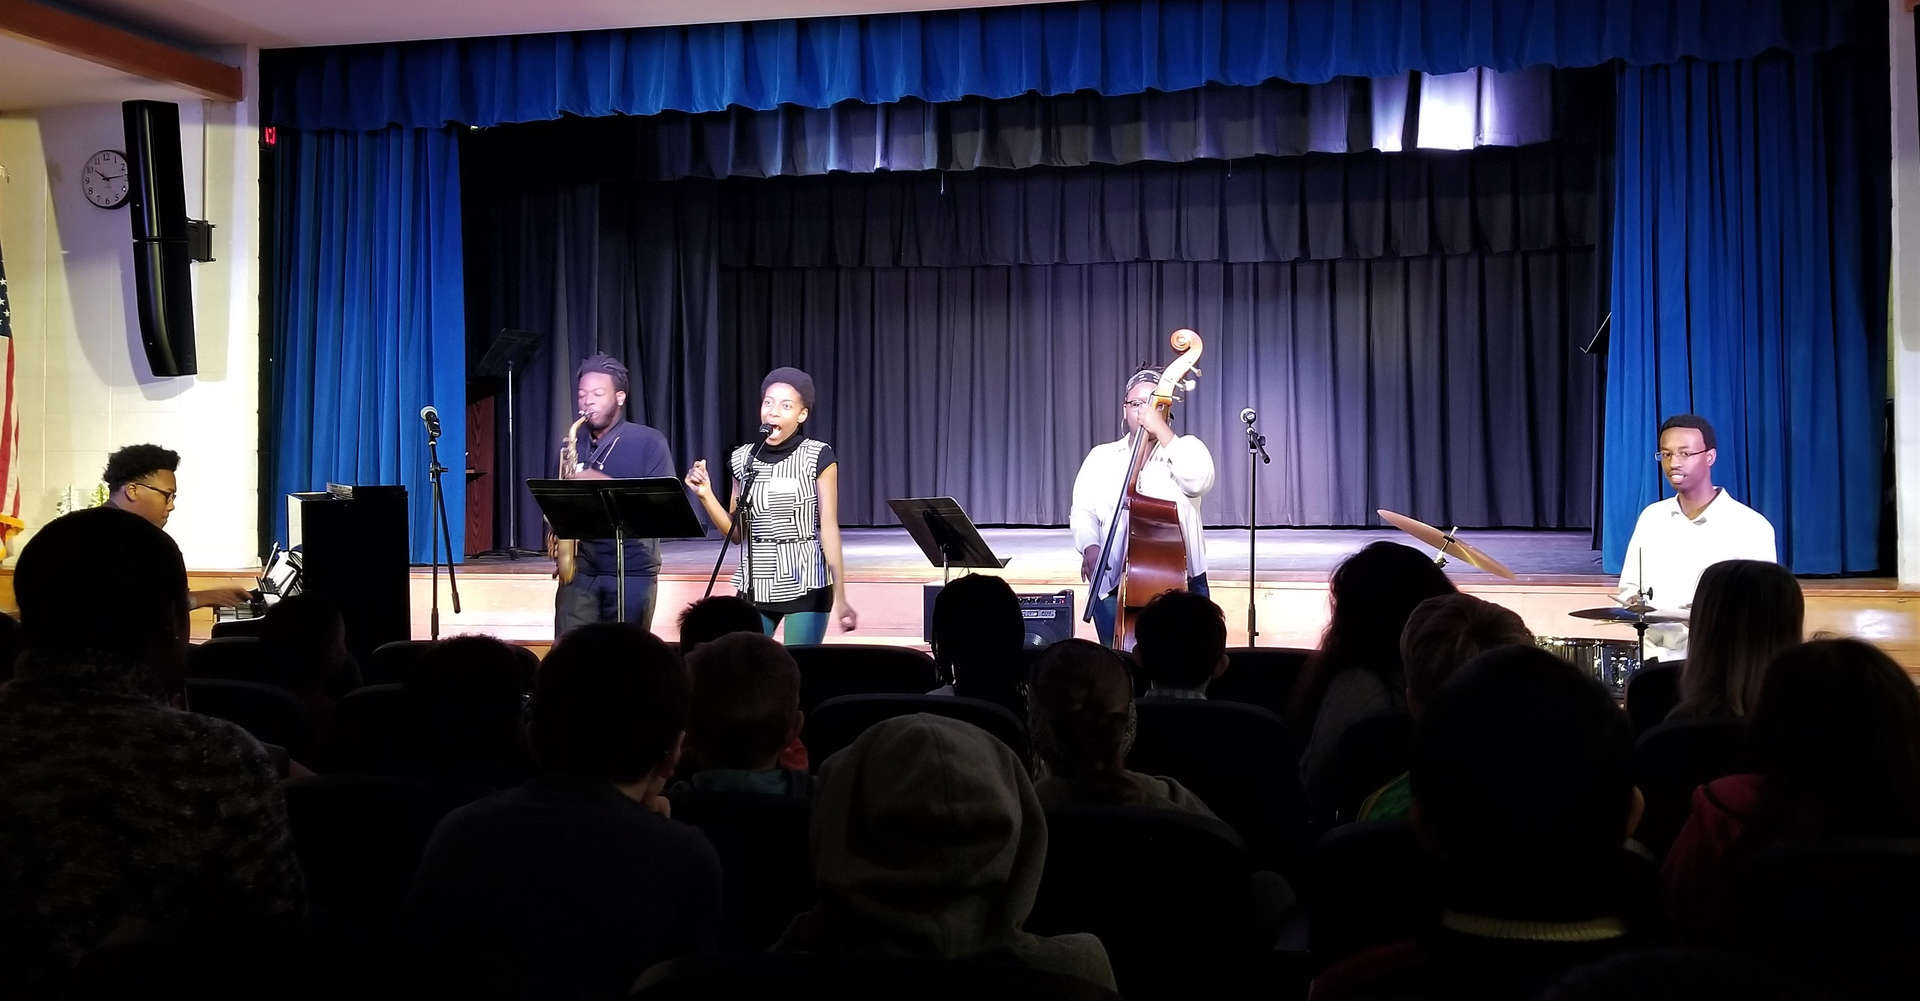 Five musicians perform for an audience of students and staff.